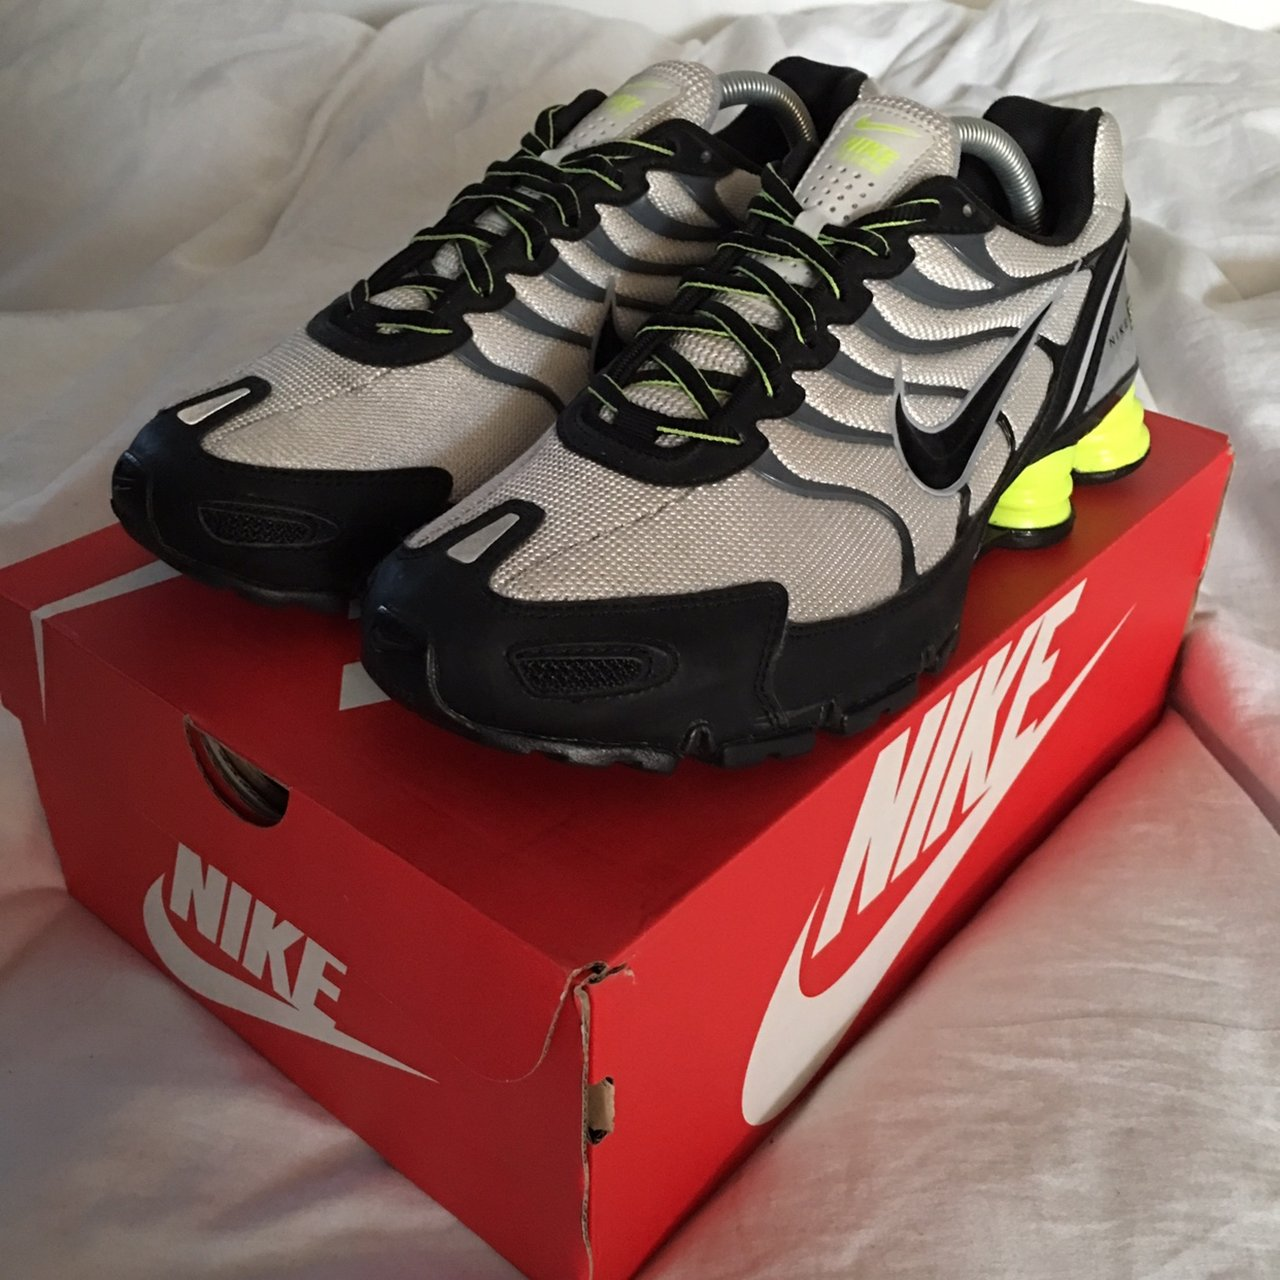 c9d2153de213d Nike Shox 2013 UK8 like TN Vapormax Good used condition - Depop